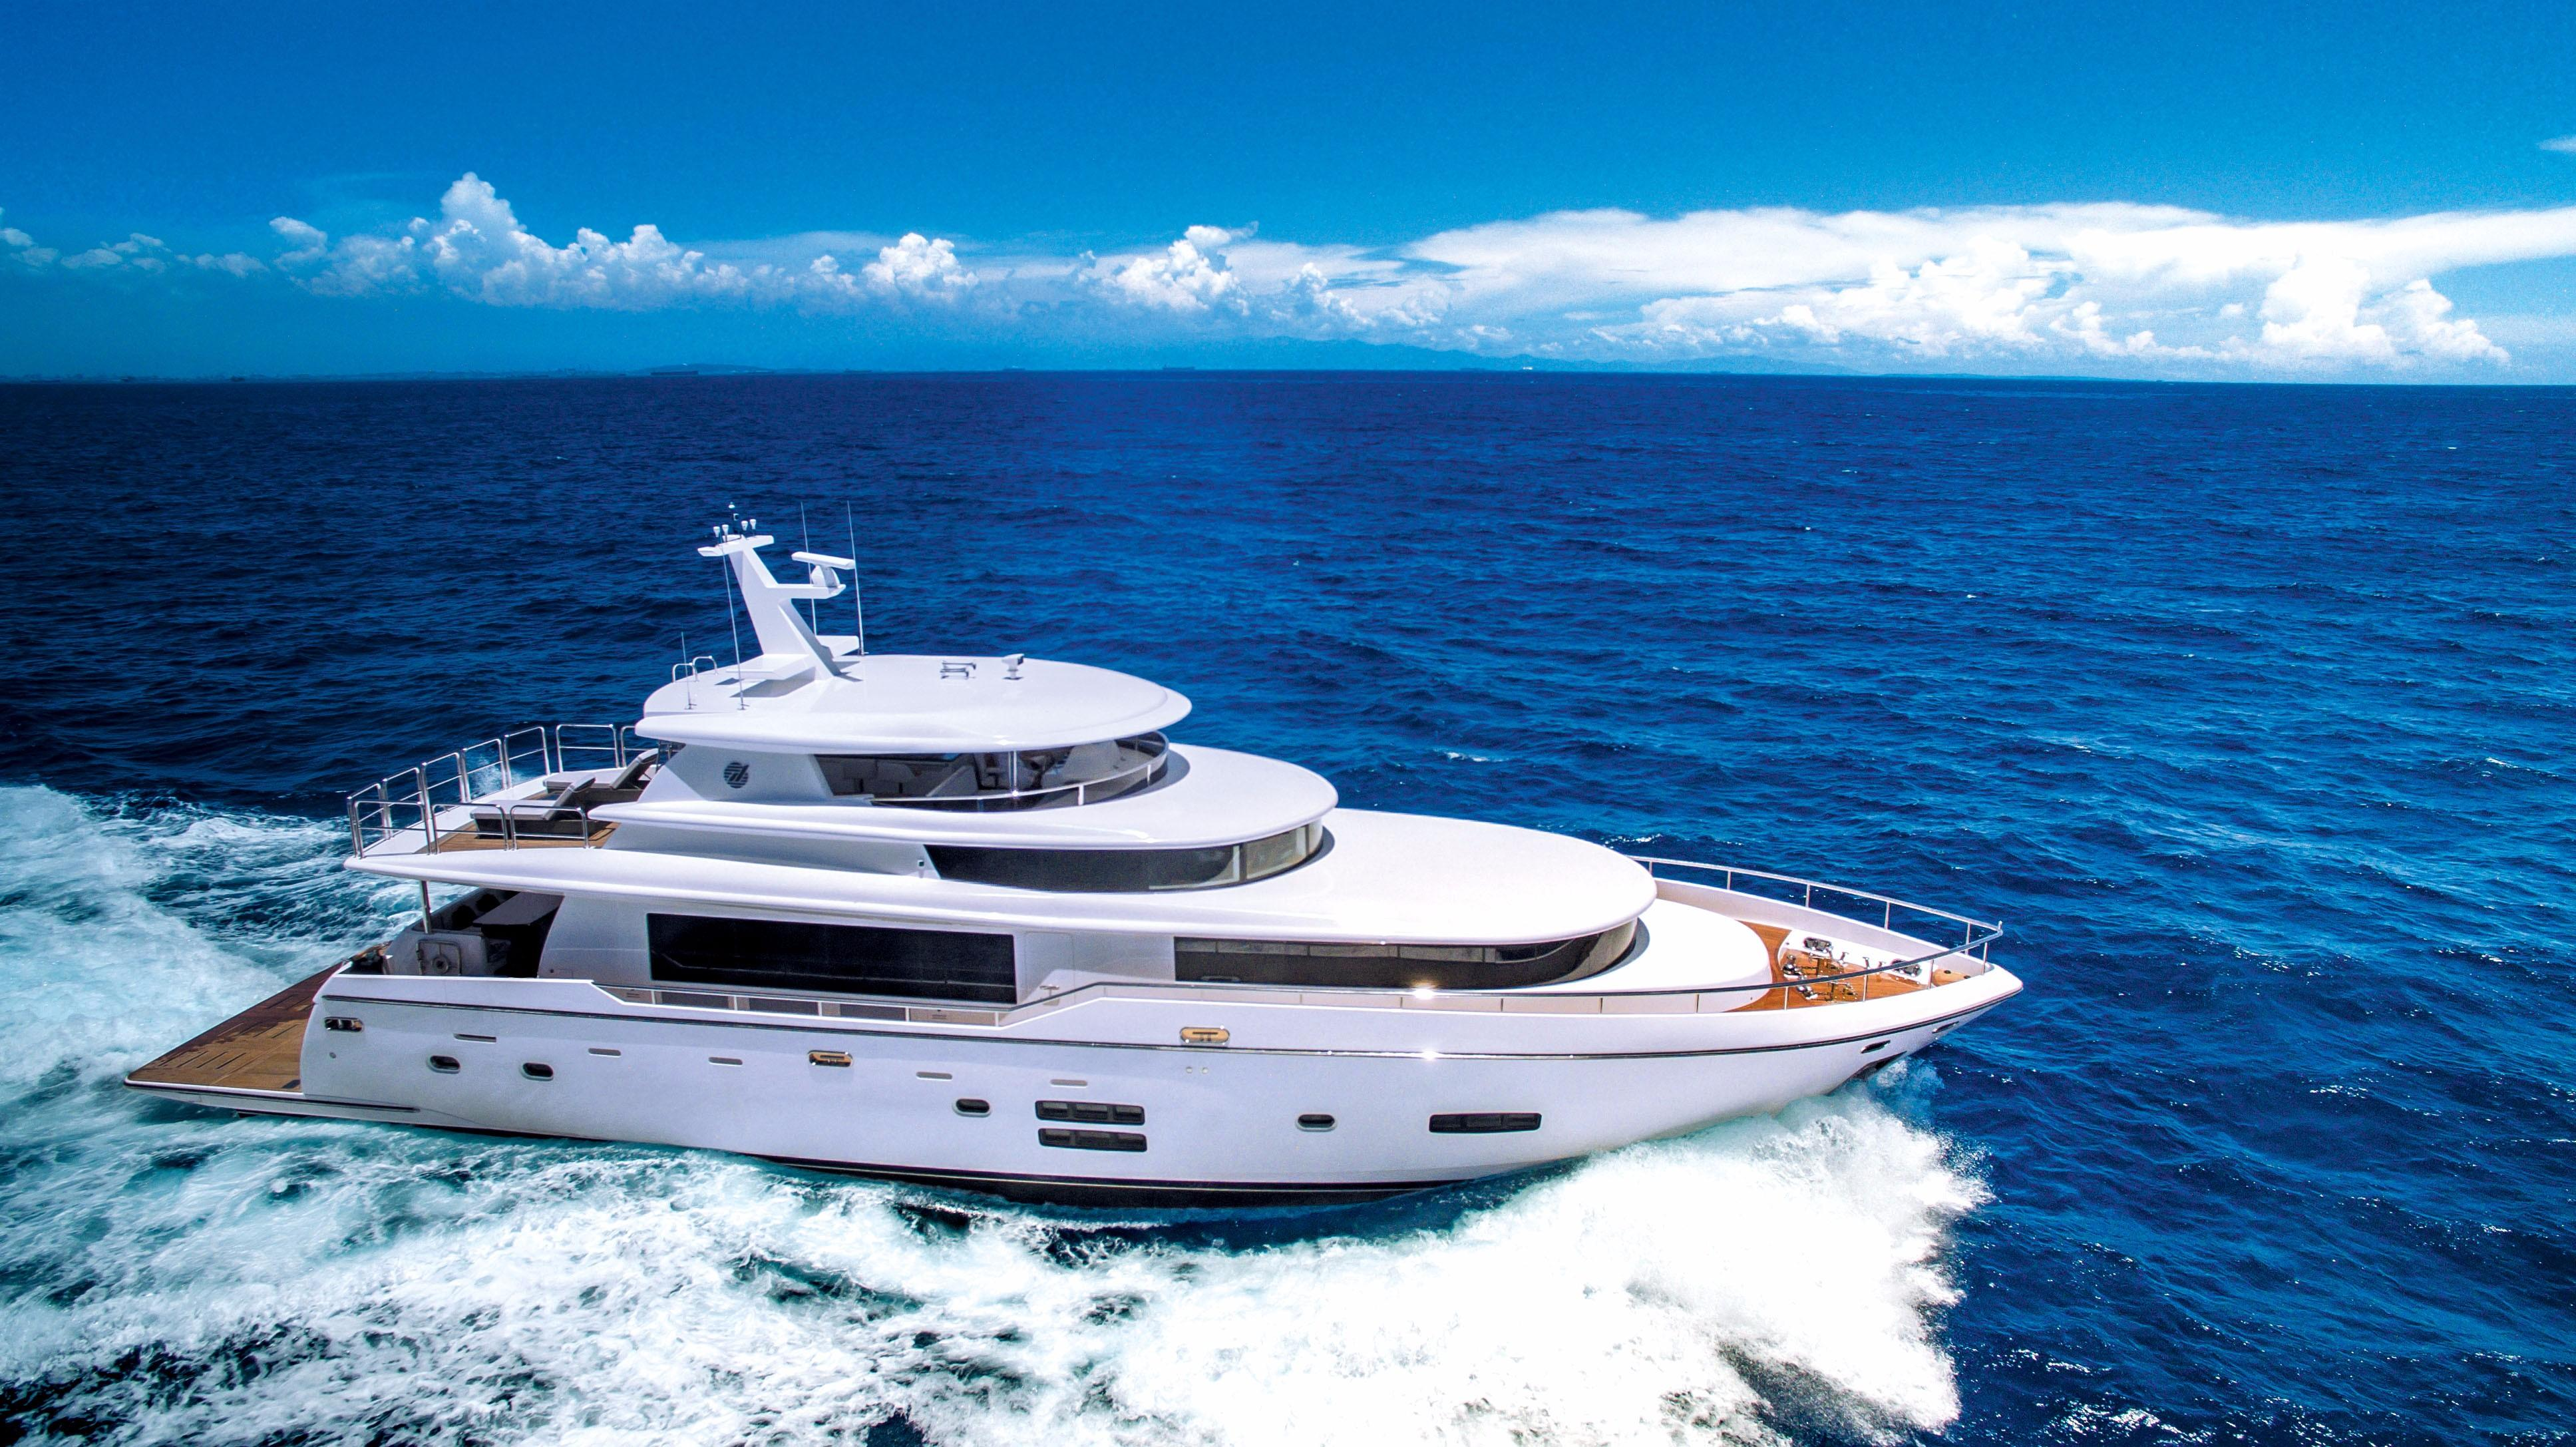 Used Johnson Motor Yachts for Sale - Boat Search